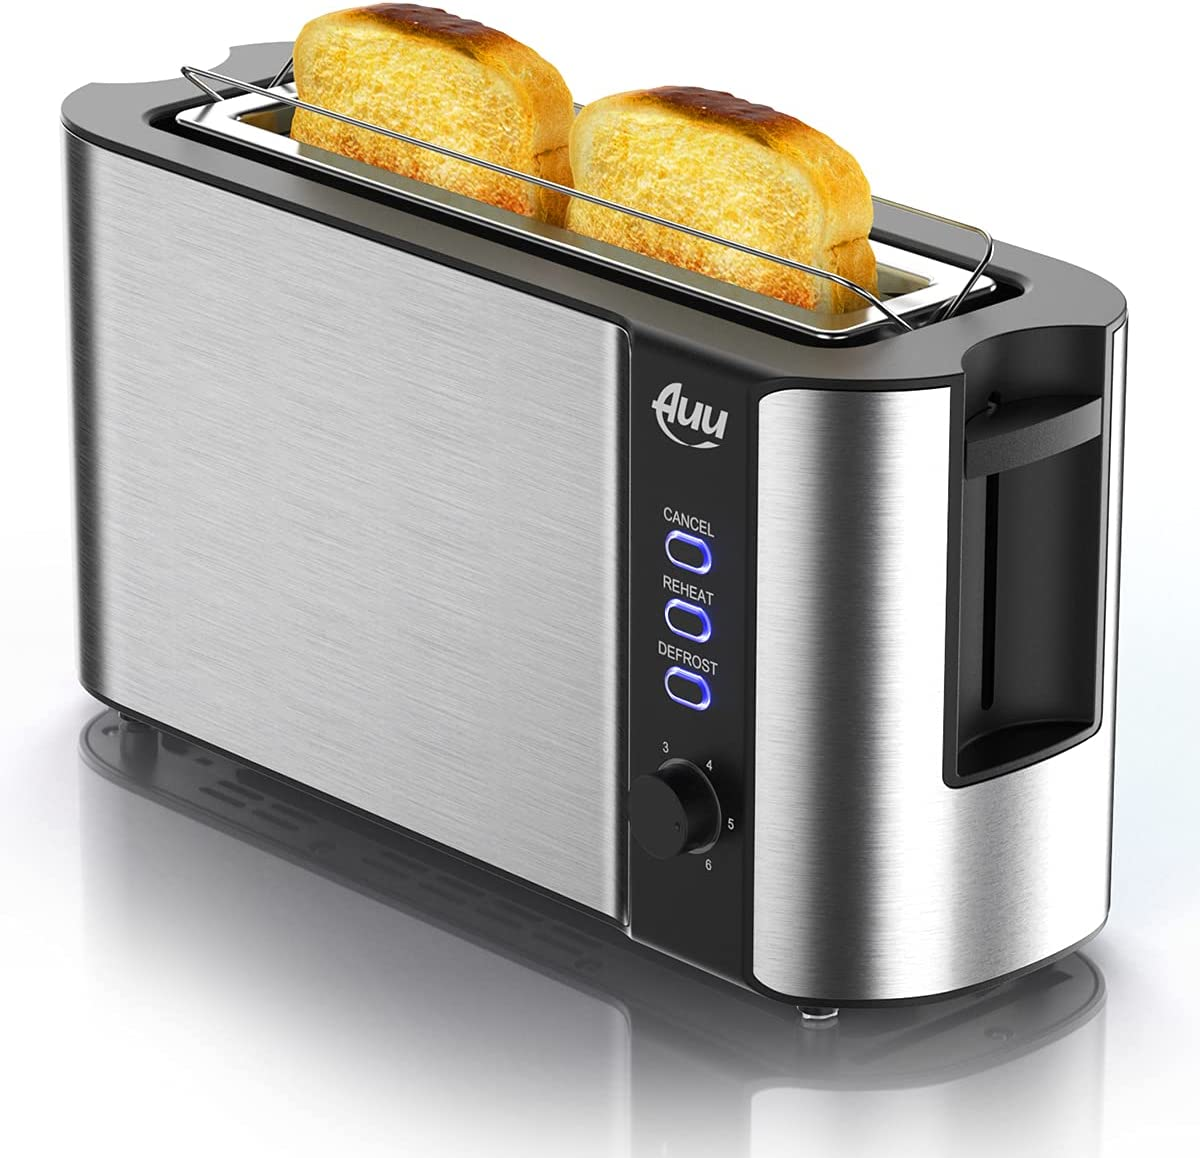 Long Slot Toaster, Toaster 2 Slice Best Rated Prime with Warming Rack, 1.7'' Extra Wide Slots Stainless Steel Toasters, 6 Browning Settings, Defrost/Reheat/Cancel, Removable Crumb Tray, 1000W